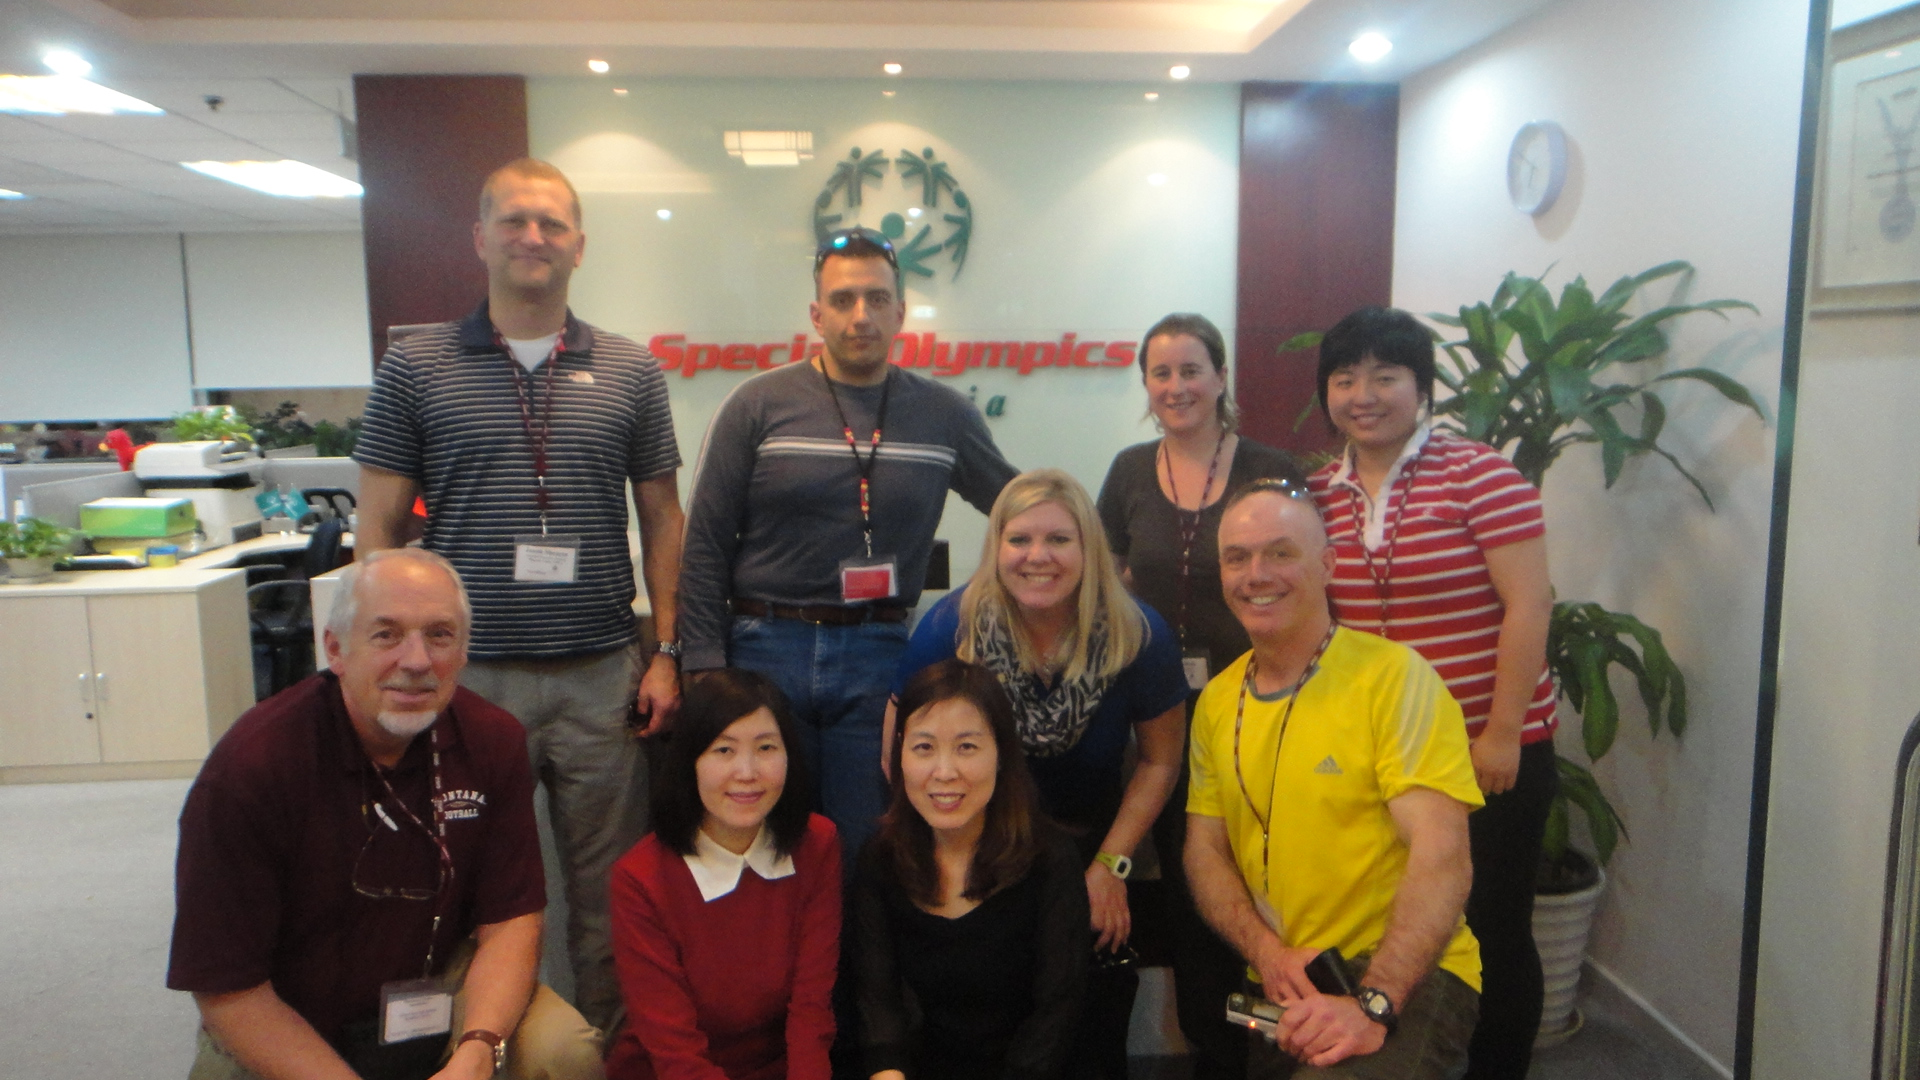 The University of Montana grantee delegation met with Special Olympics China to discuss sports engagement for youth with disabilities.